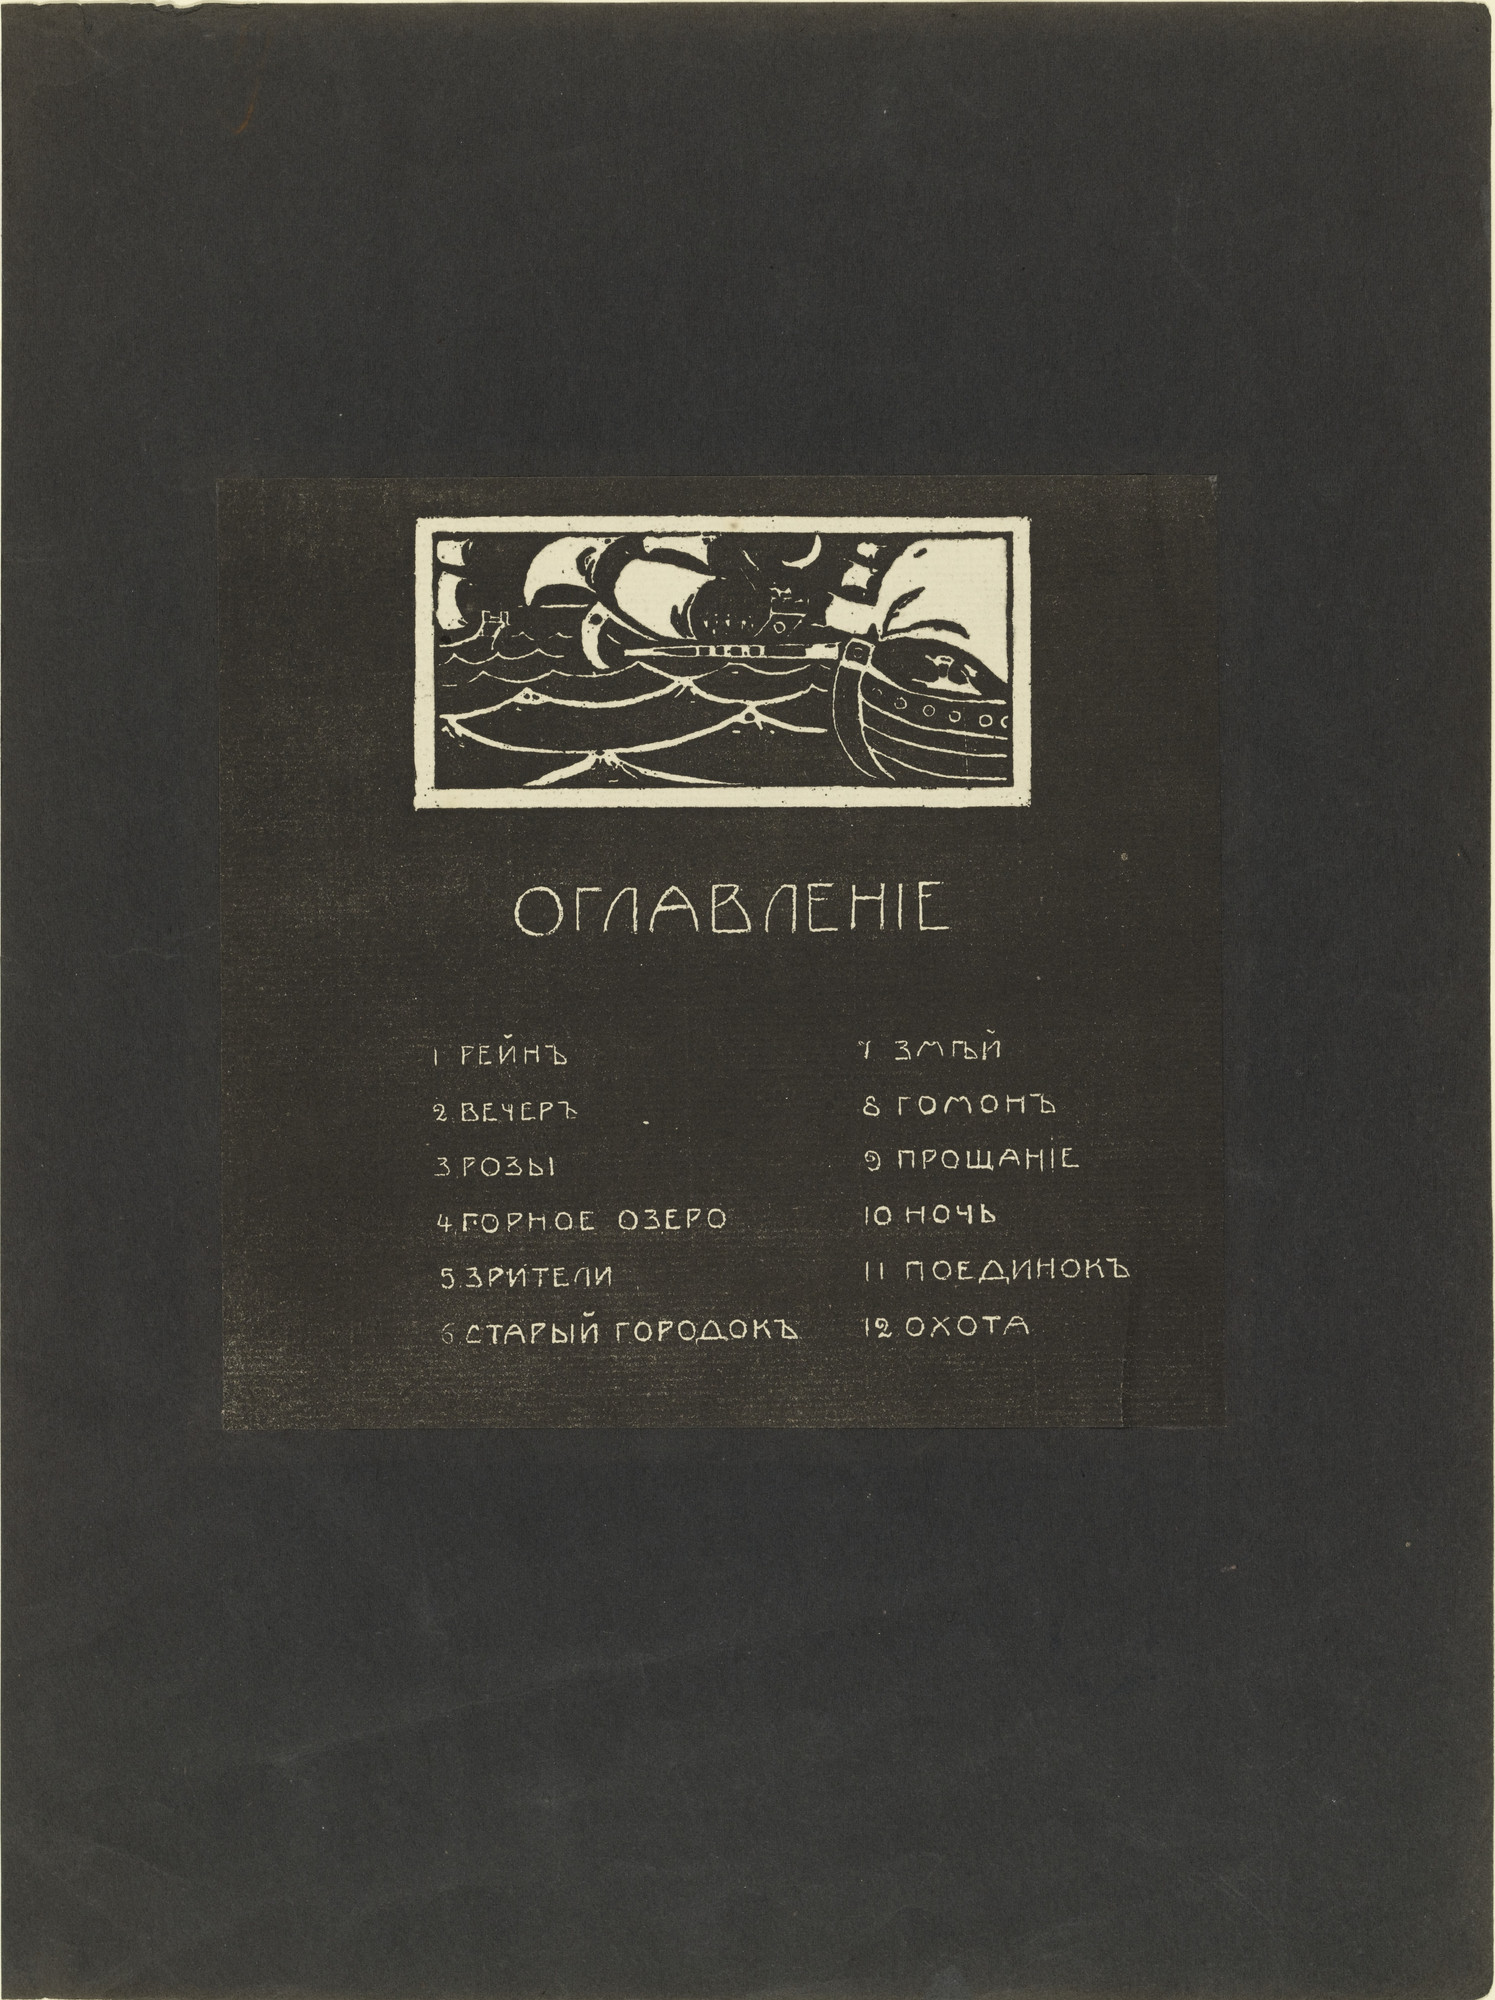 Vasily Kandinsky. Table of contents (Oglavlenie) from Verses Without Words (Stichi bez slov). (1903)